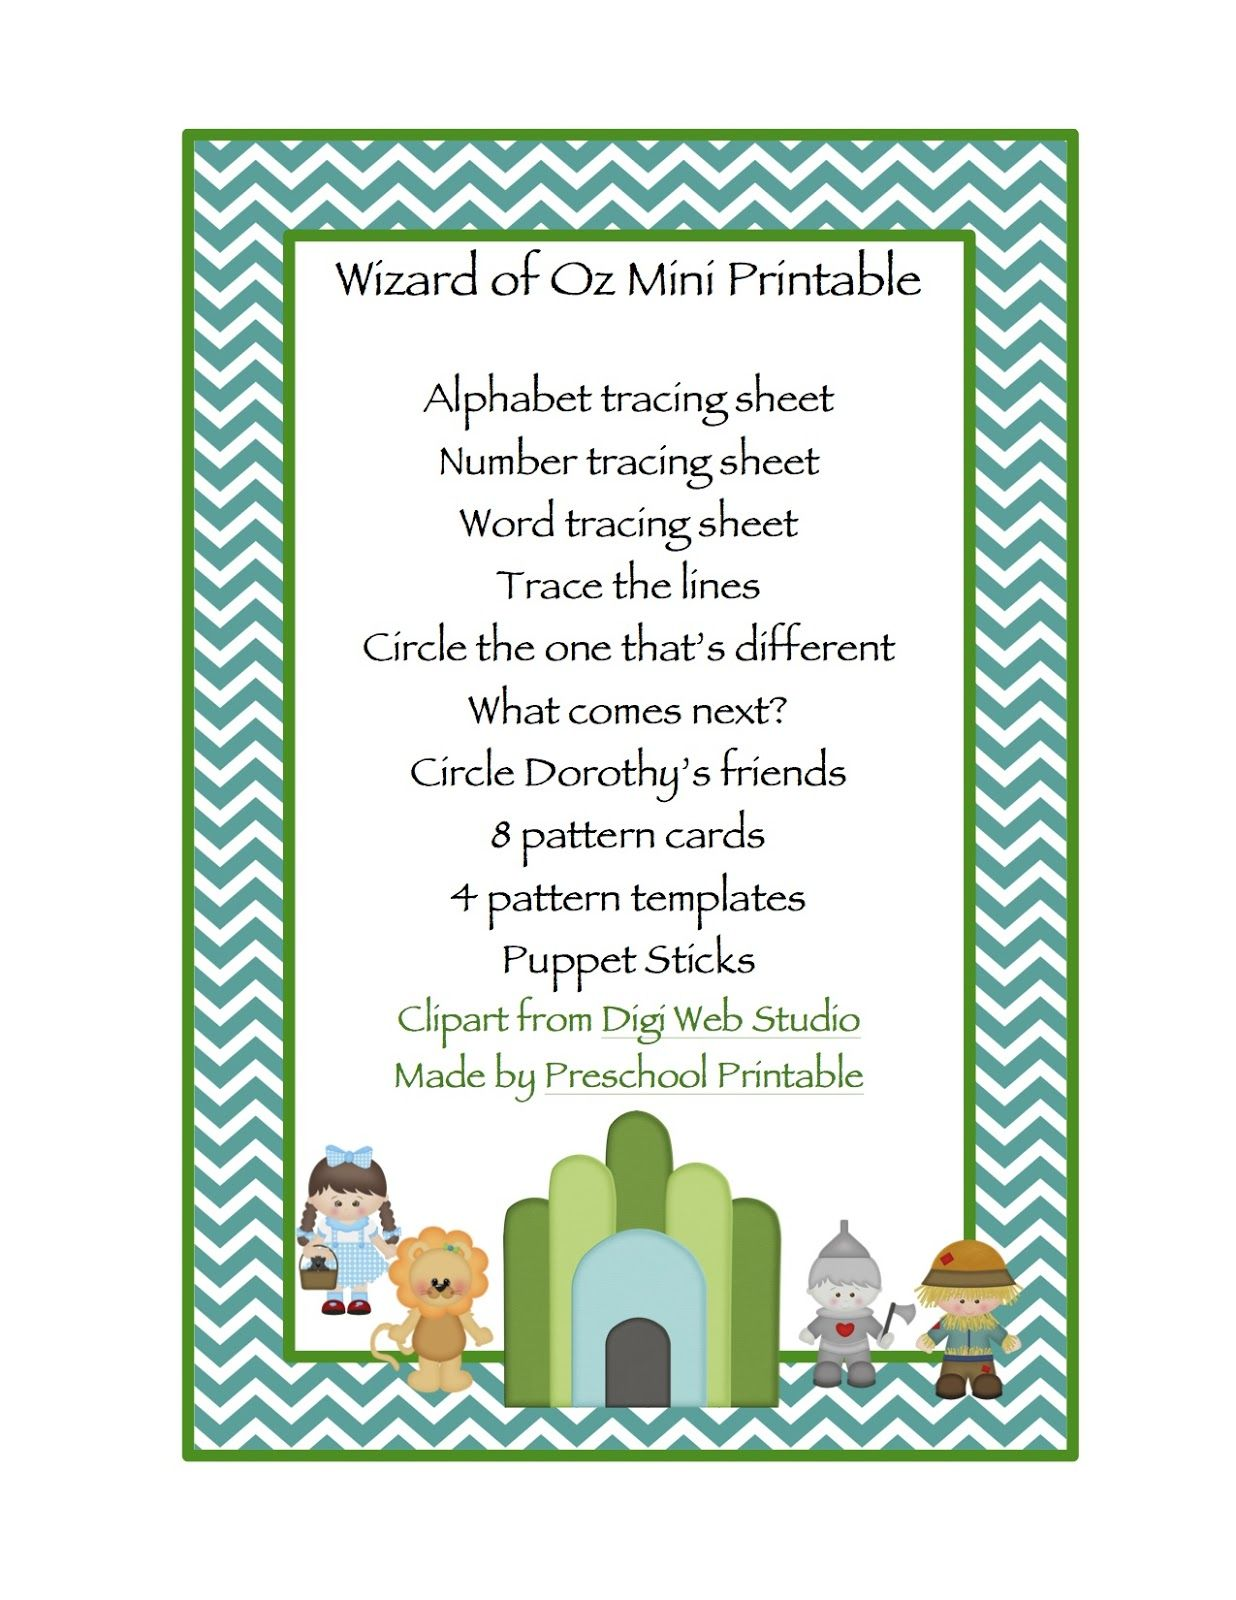 Preschool Printables Wizard Of Oz